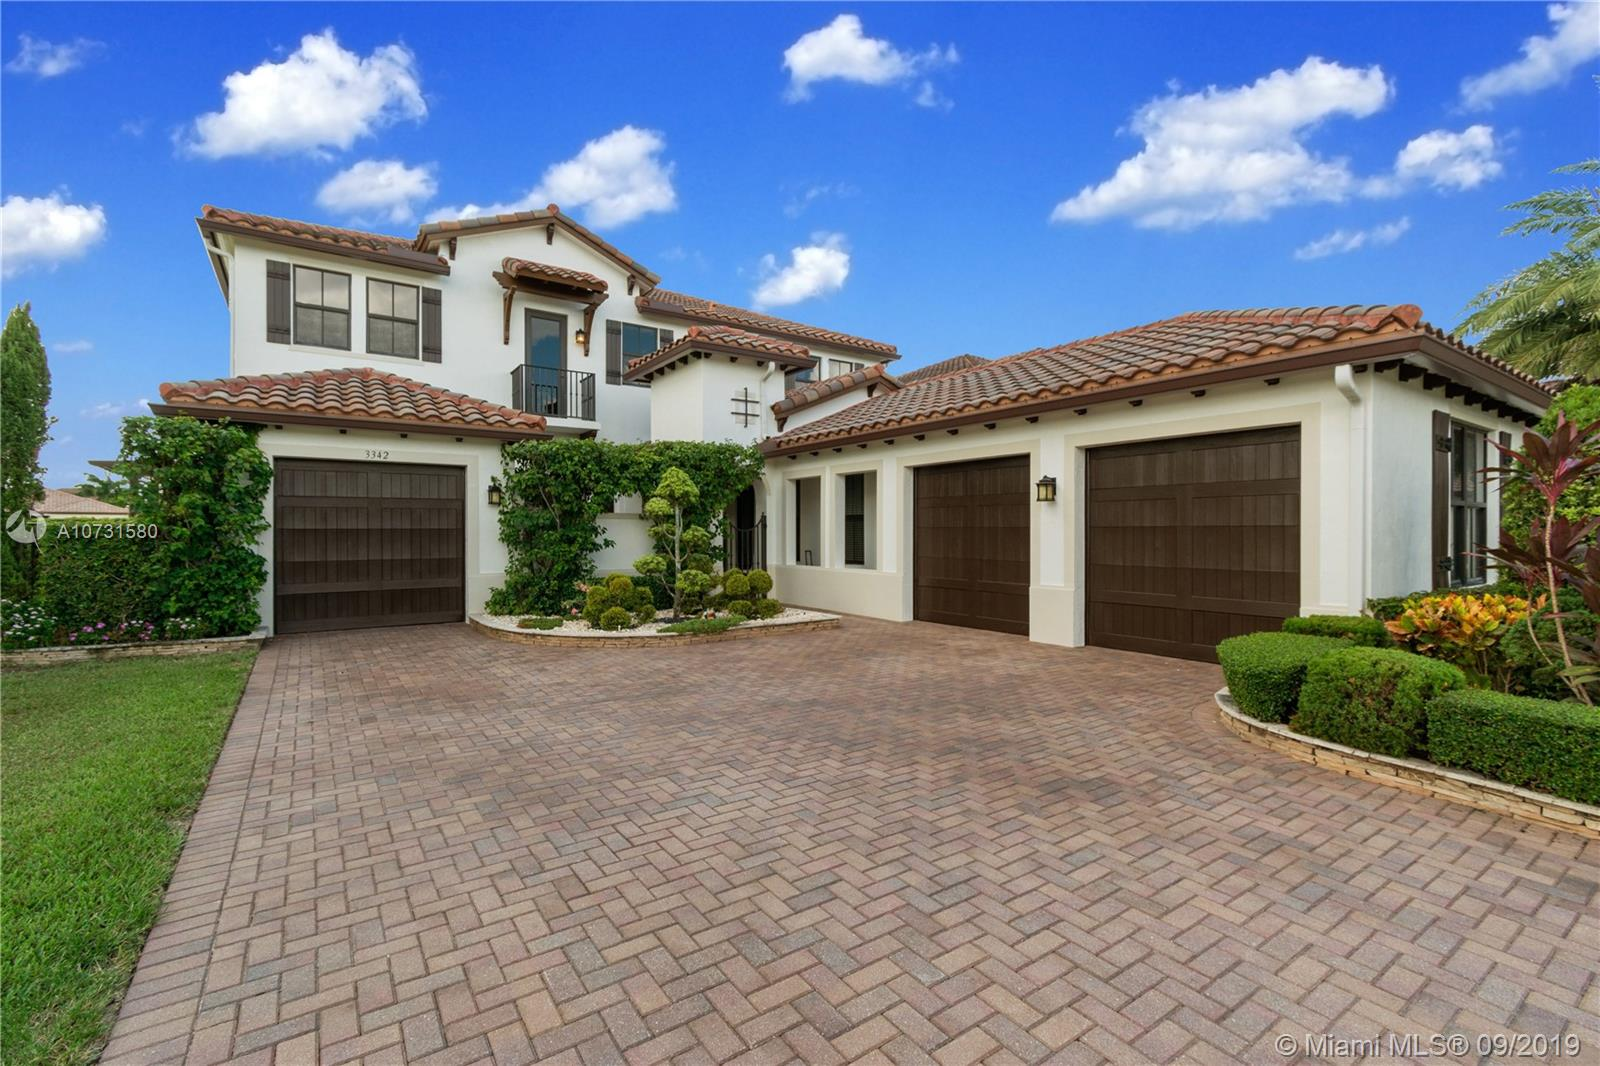 3342 NW 82 Way, Cooper City, Florida